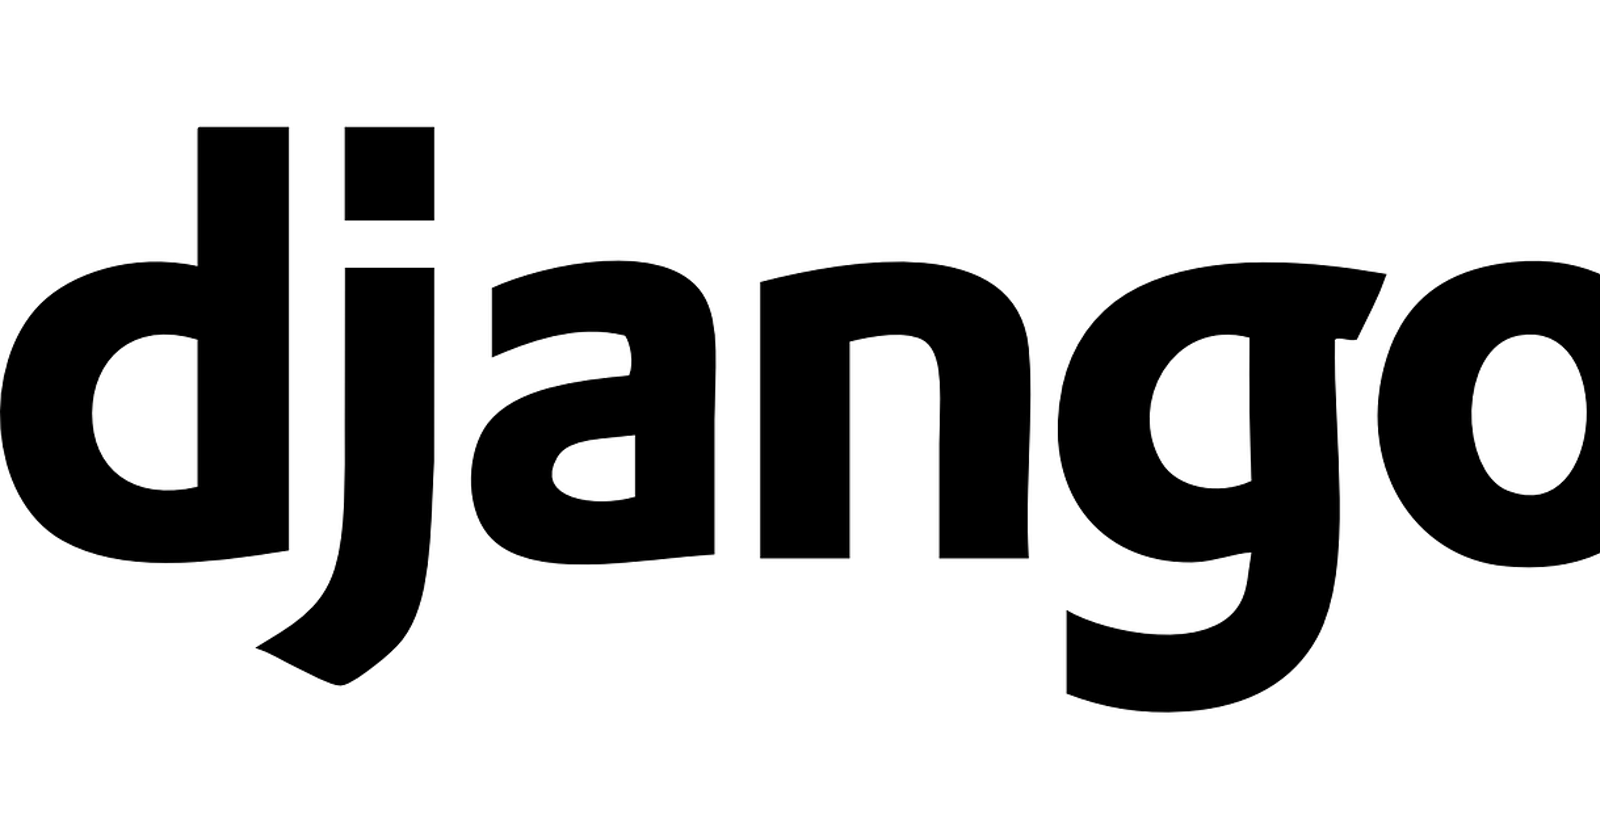 How to start a Django Project?